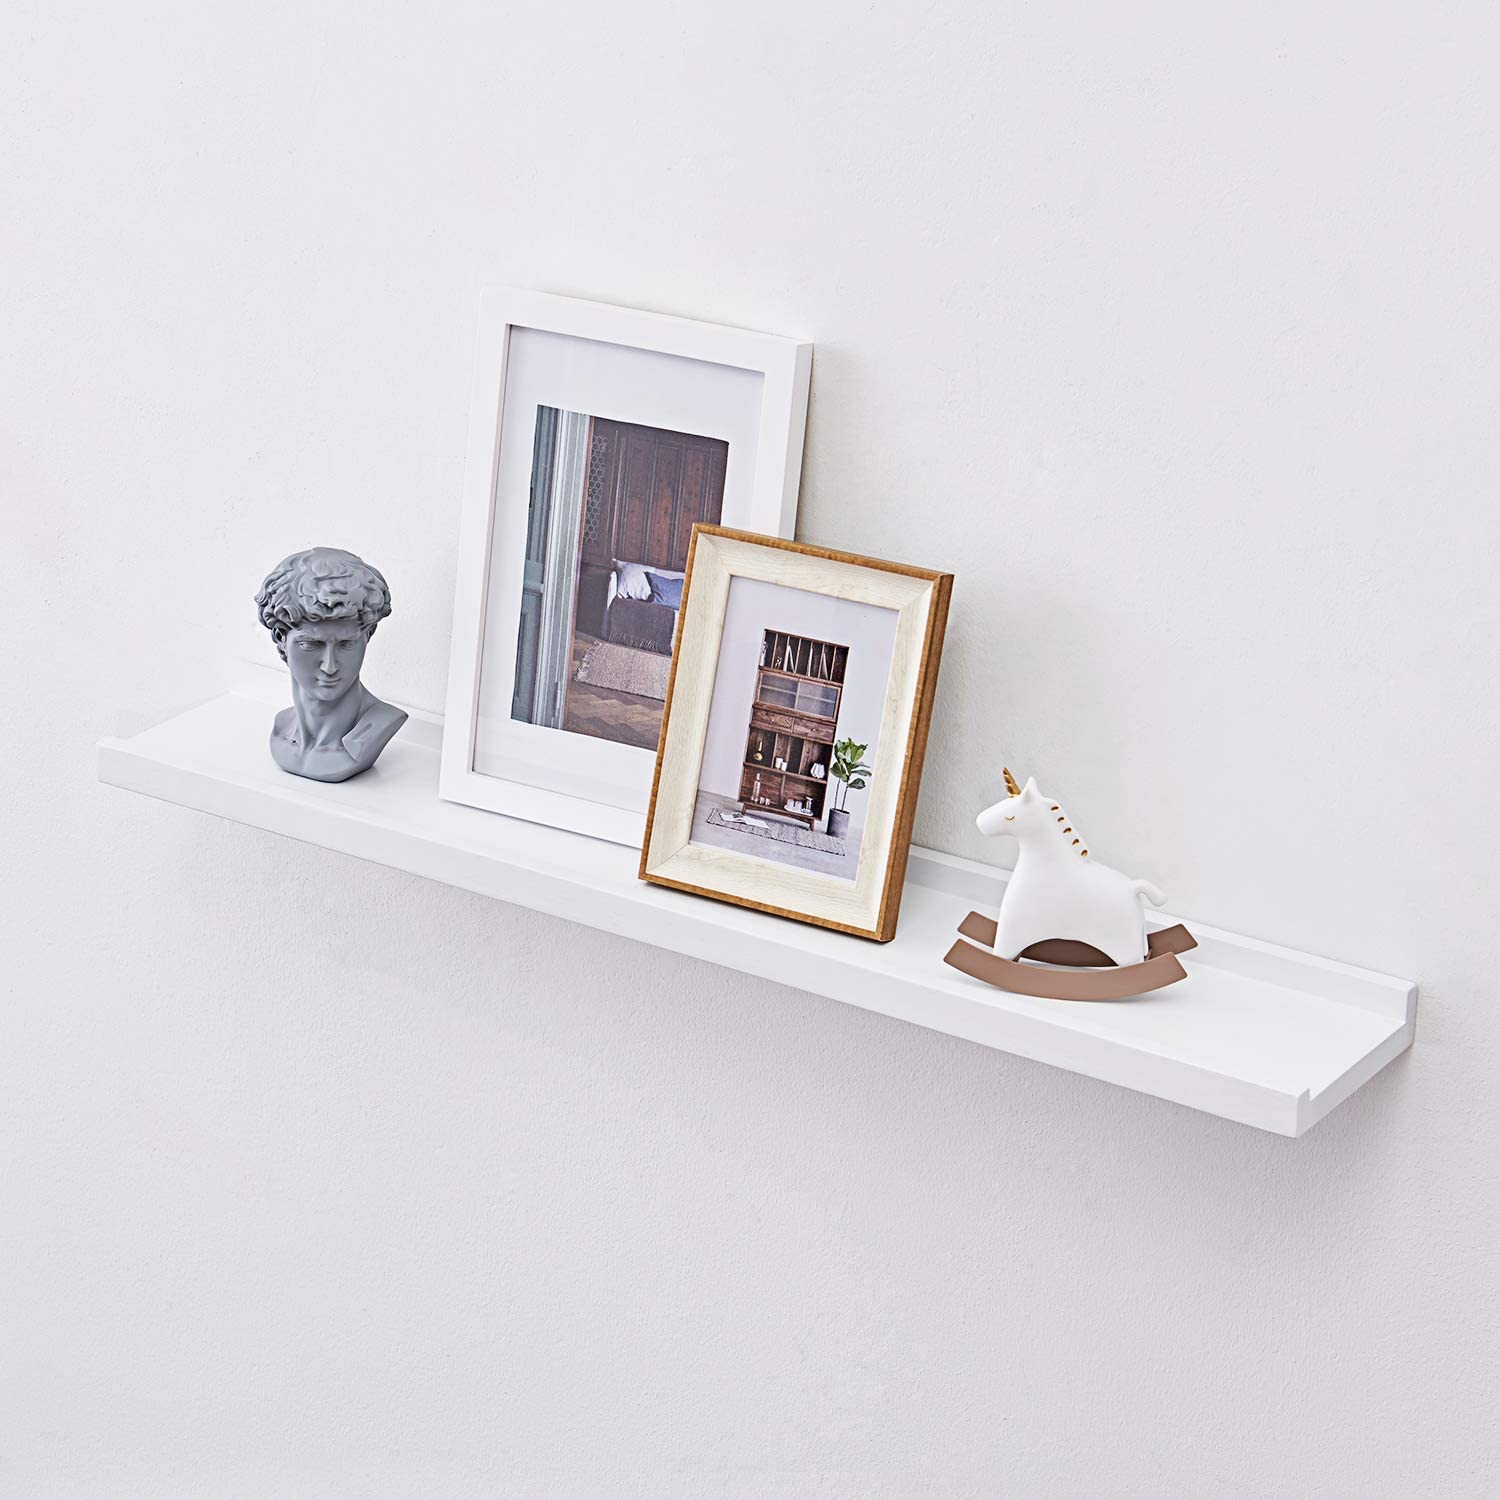 HOMWOO Floating Shelves Oak Solid Wood Wall Bookshelf Picture Ledge for Home, Living Room, Bedroom, Bathroom, Office 1pcs-24inches